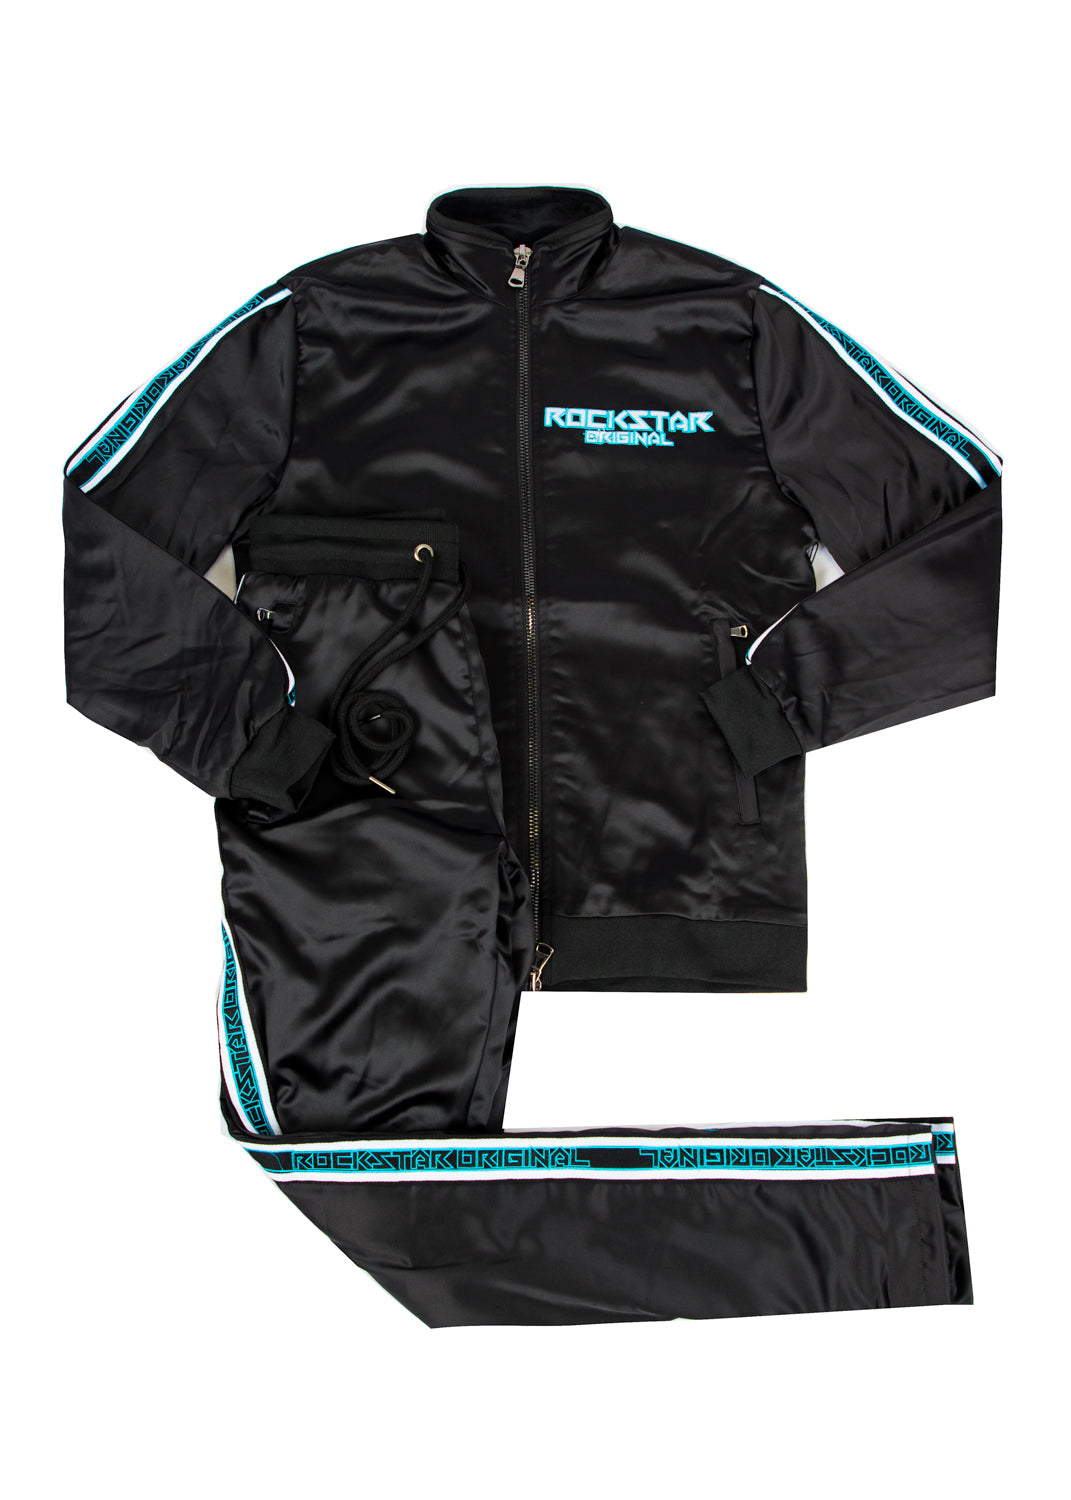 Vito (Black) Track Suit